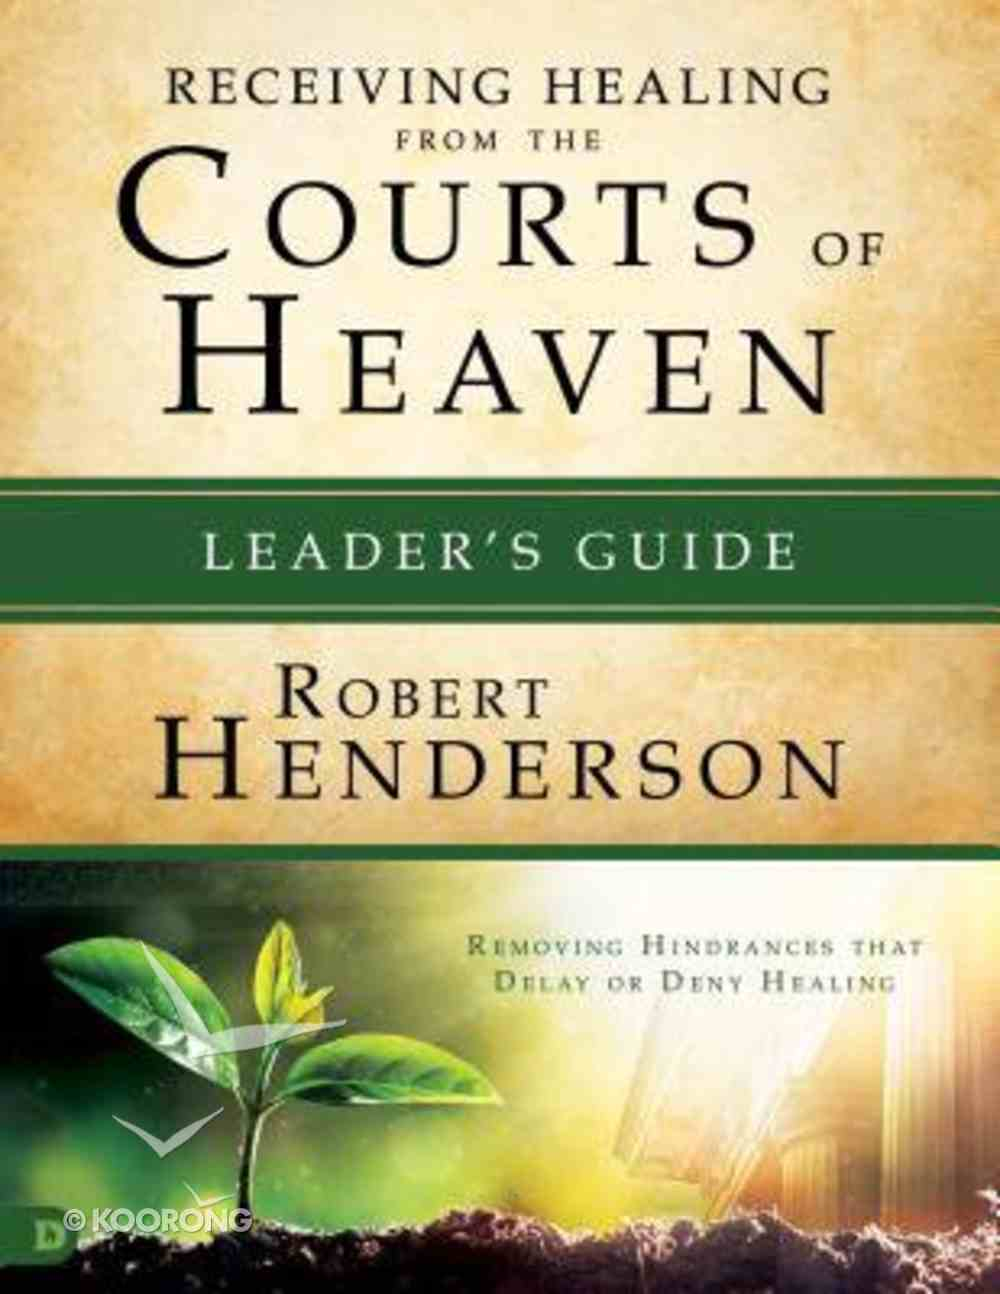 Receiving Healing From the Courts of Heaven - Removing Hindrances That Delay Or Deny Your Healing (Leader's Guide) (#03 in Official Courts Of Heaven Series) Paperback